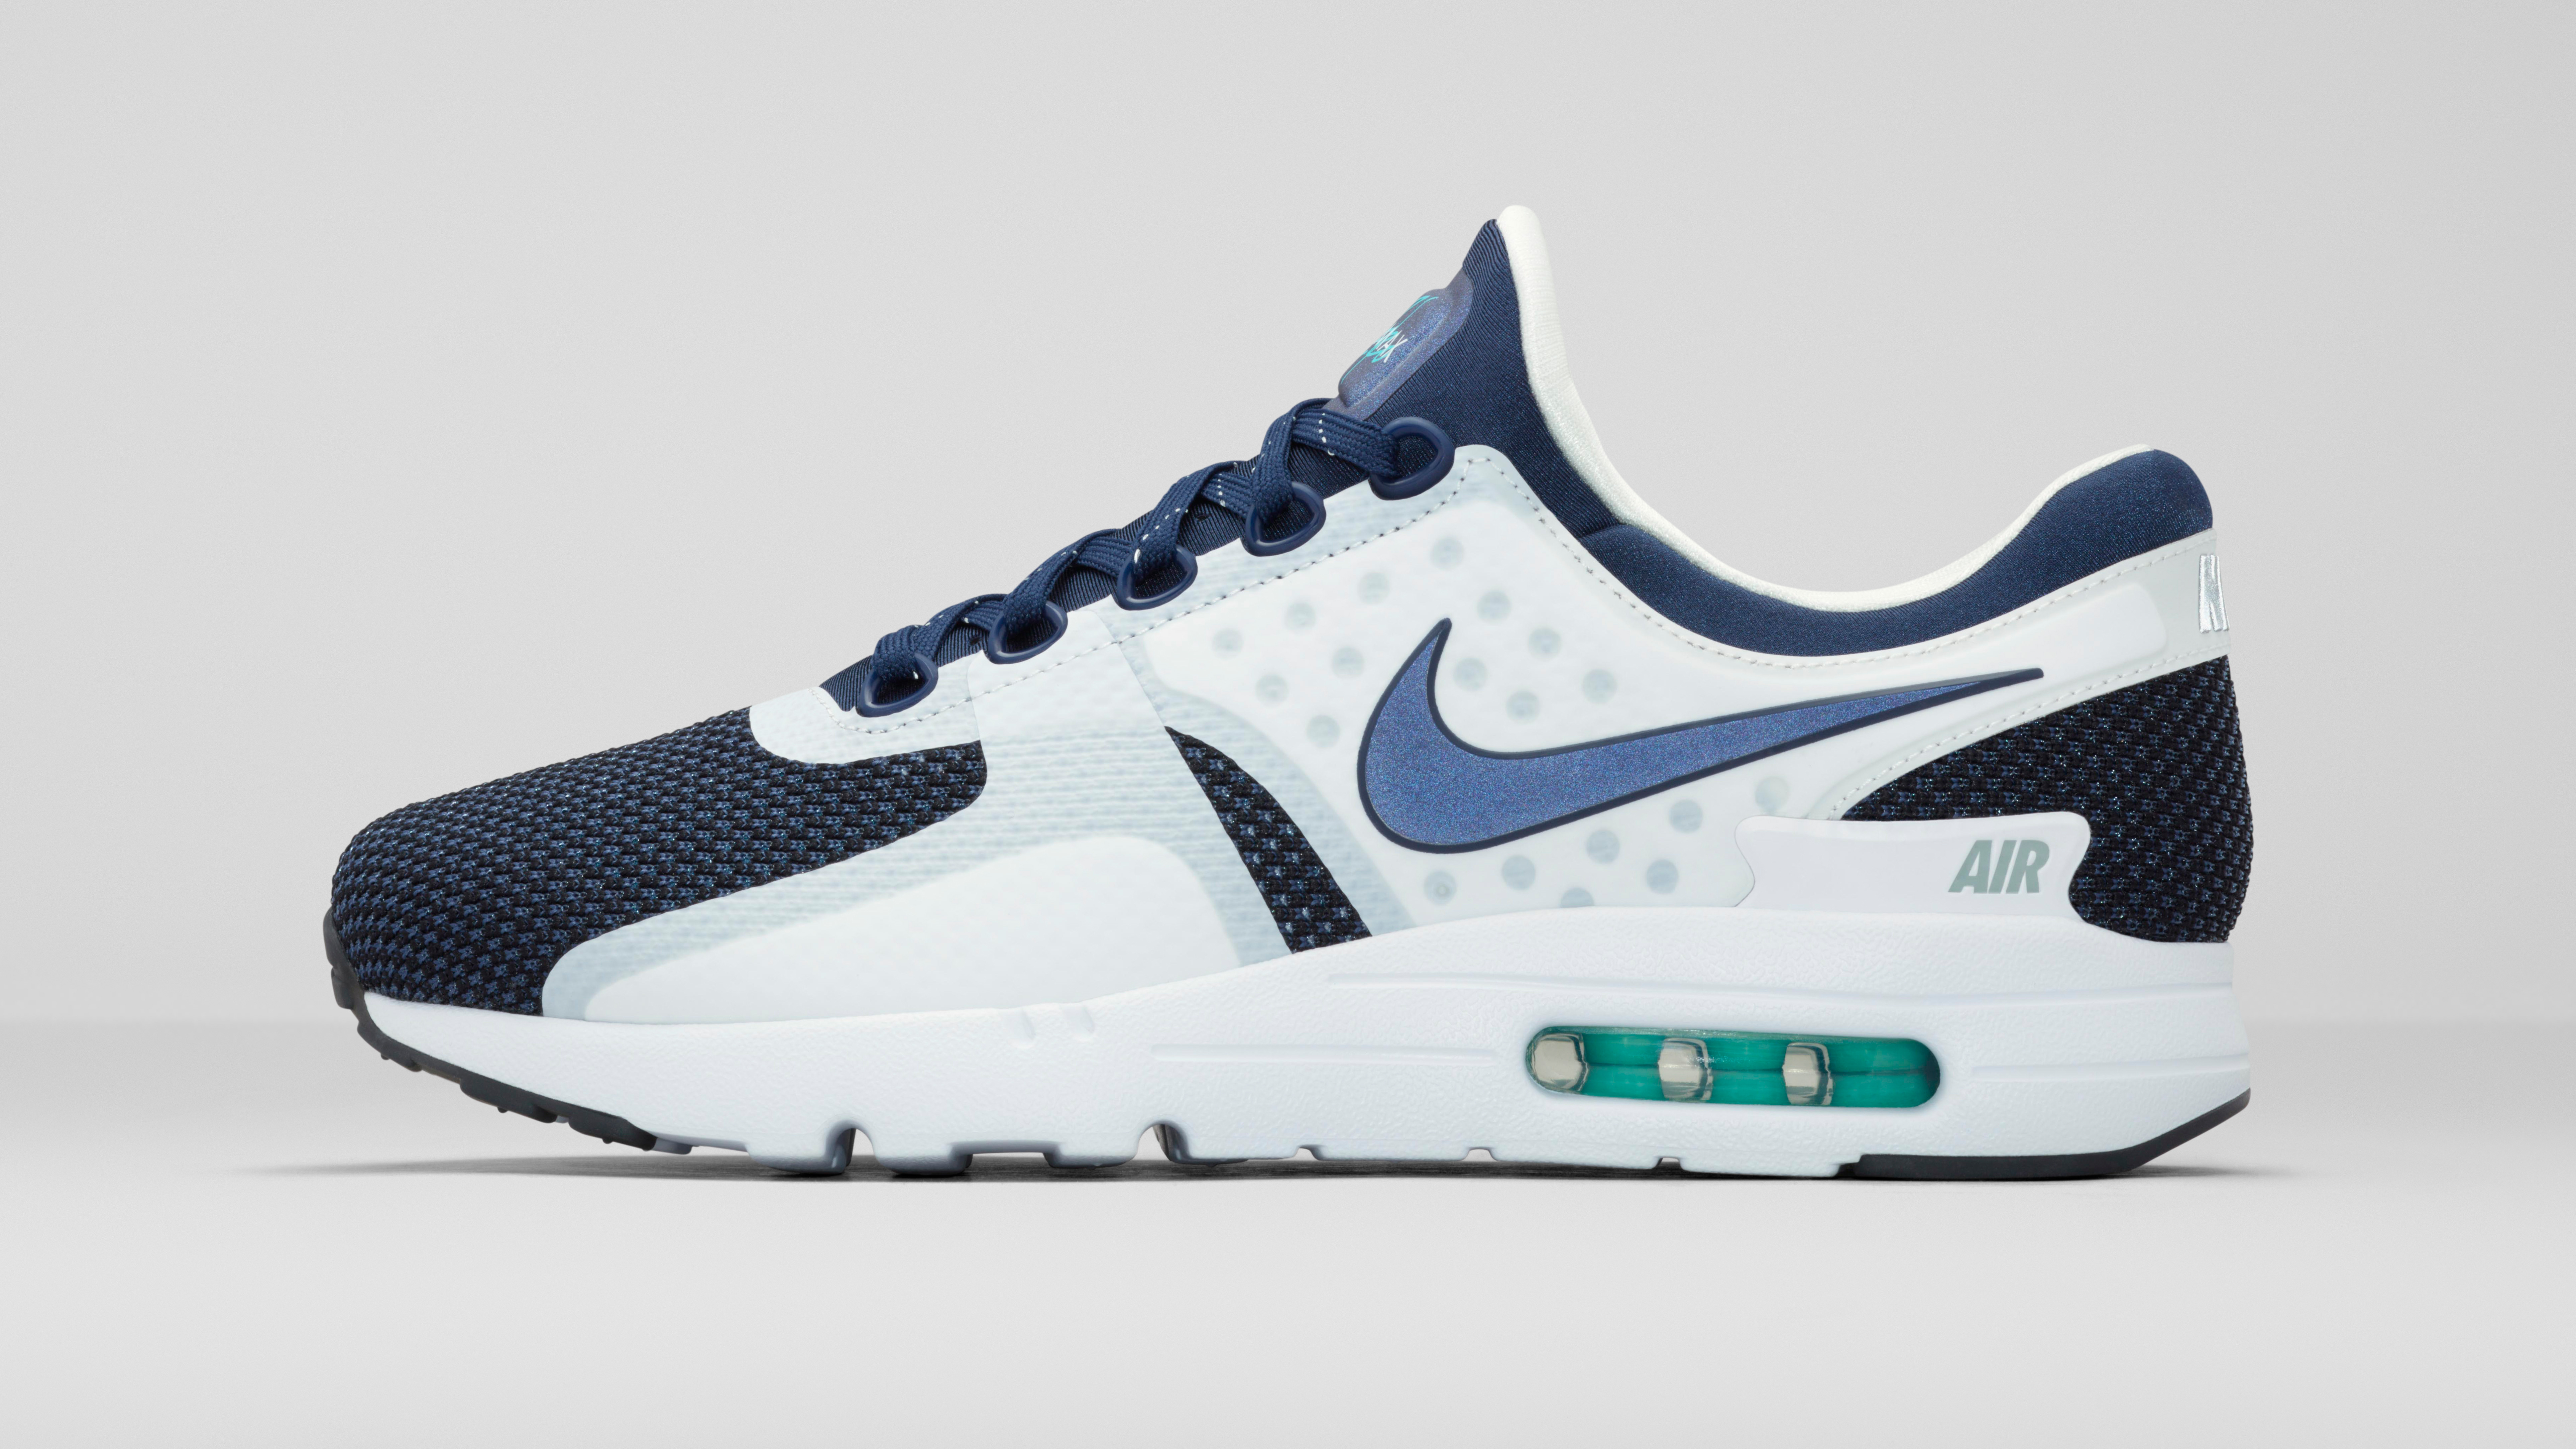 f1be40f1d221 Nike Air Max Zero   Nike Sneakers Online at Best Prices ...